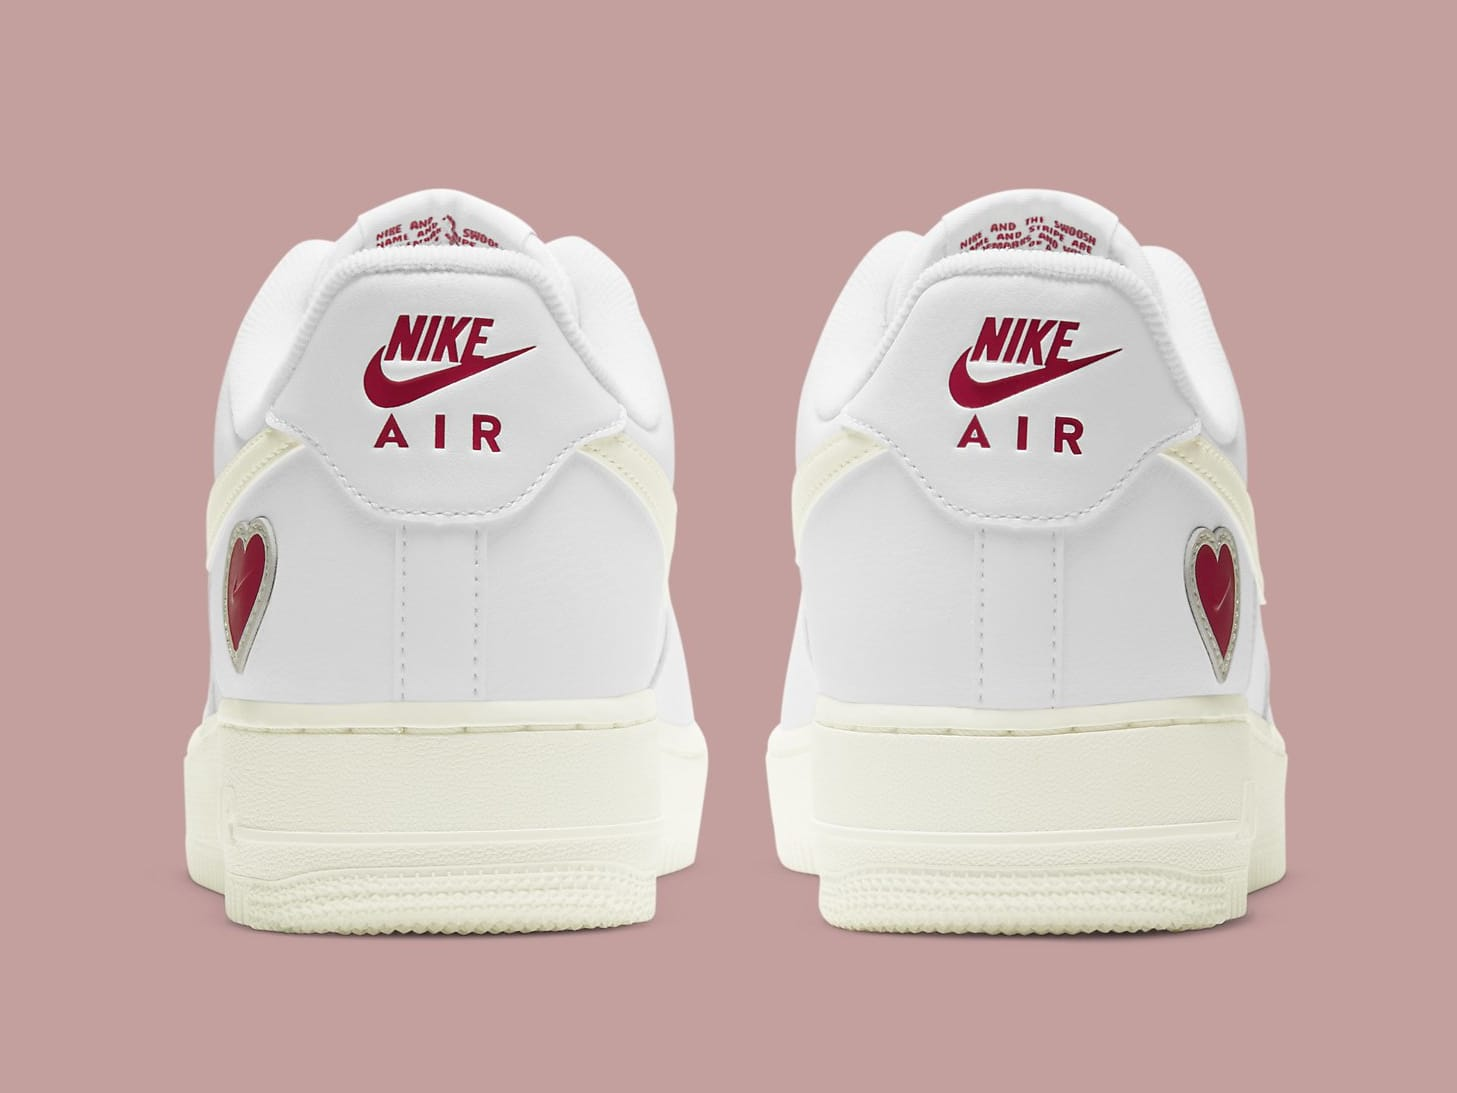 Nike Air Force 1 Low Valentine's Day 2021 Release Date DD7117-100 Heel